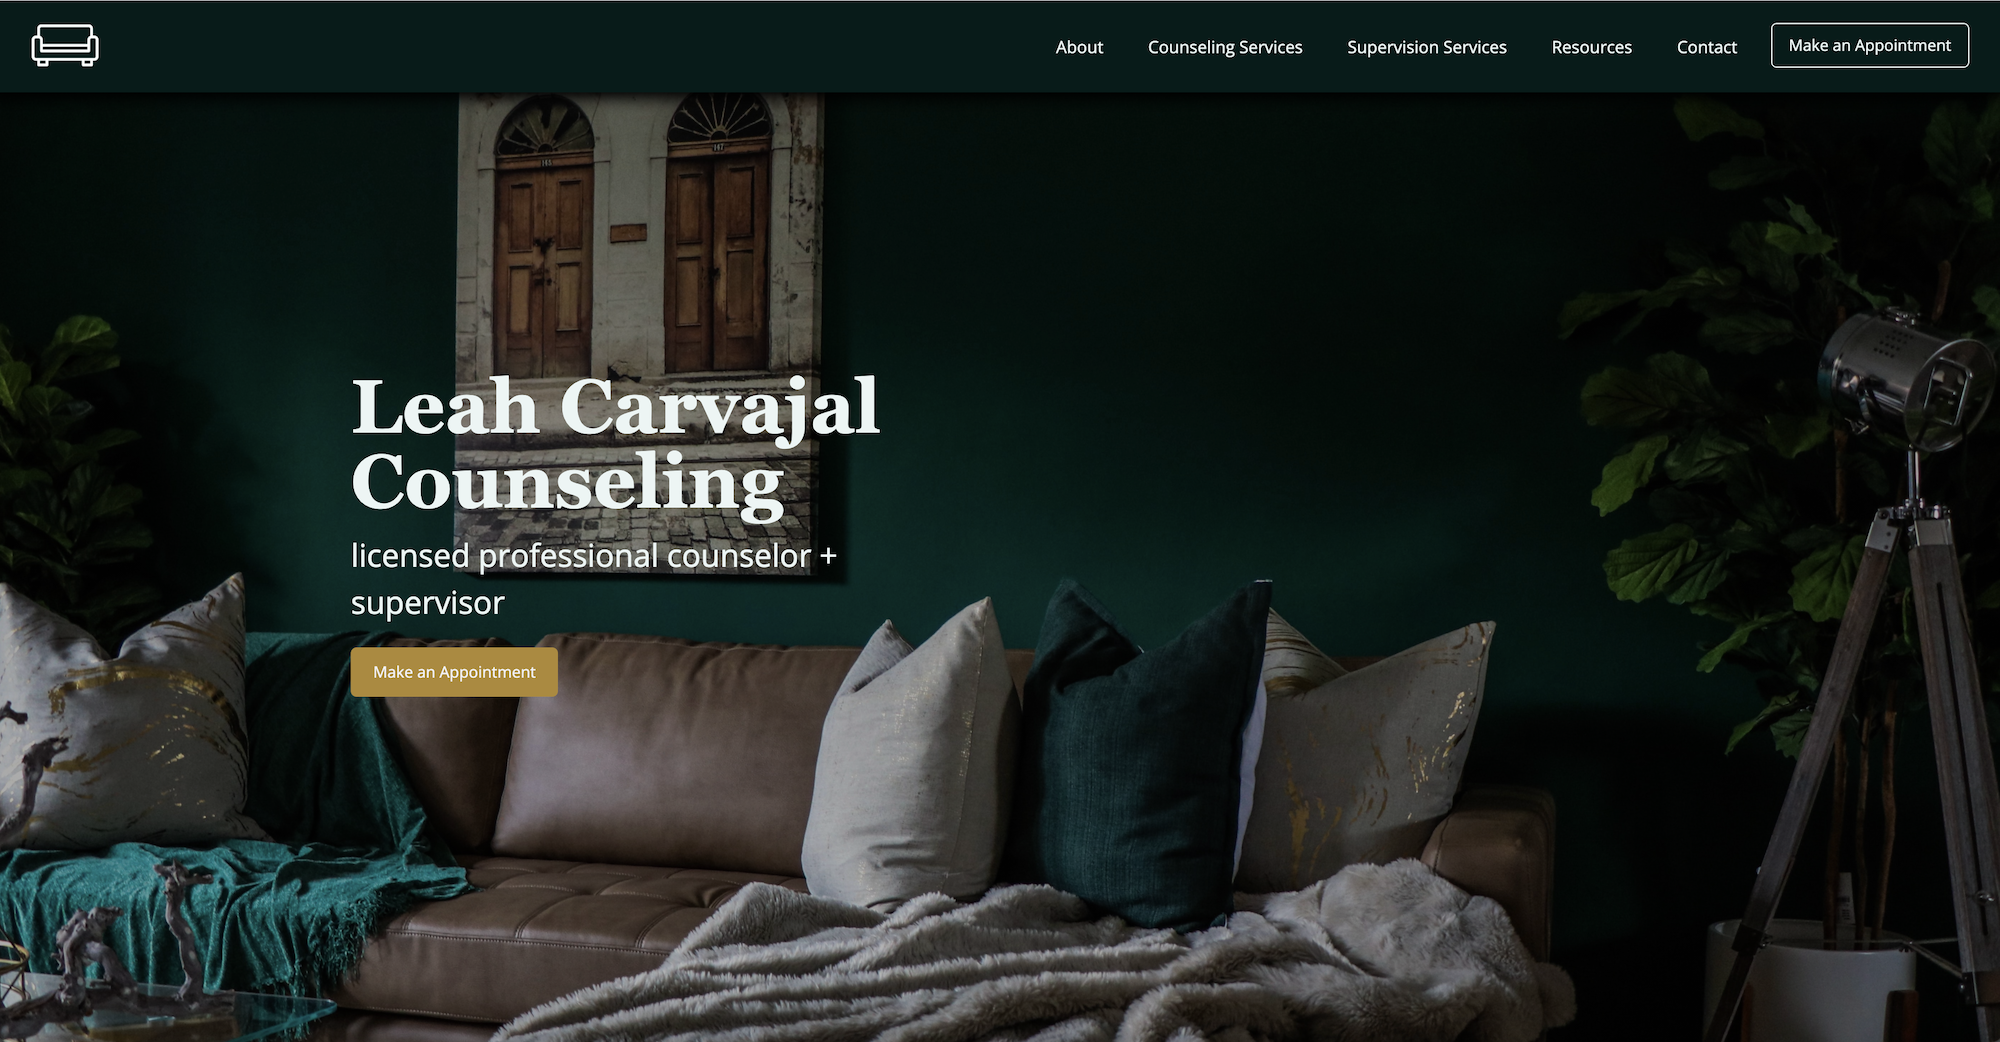 Leah Carvajal Counseling